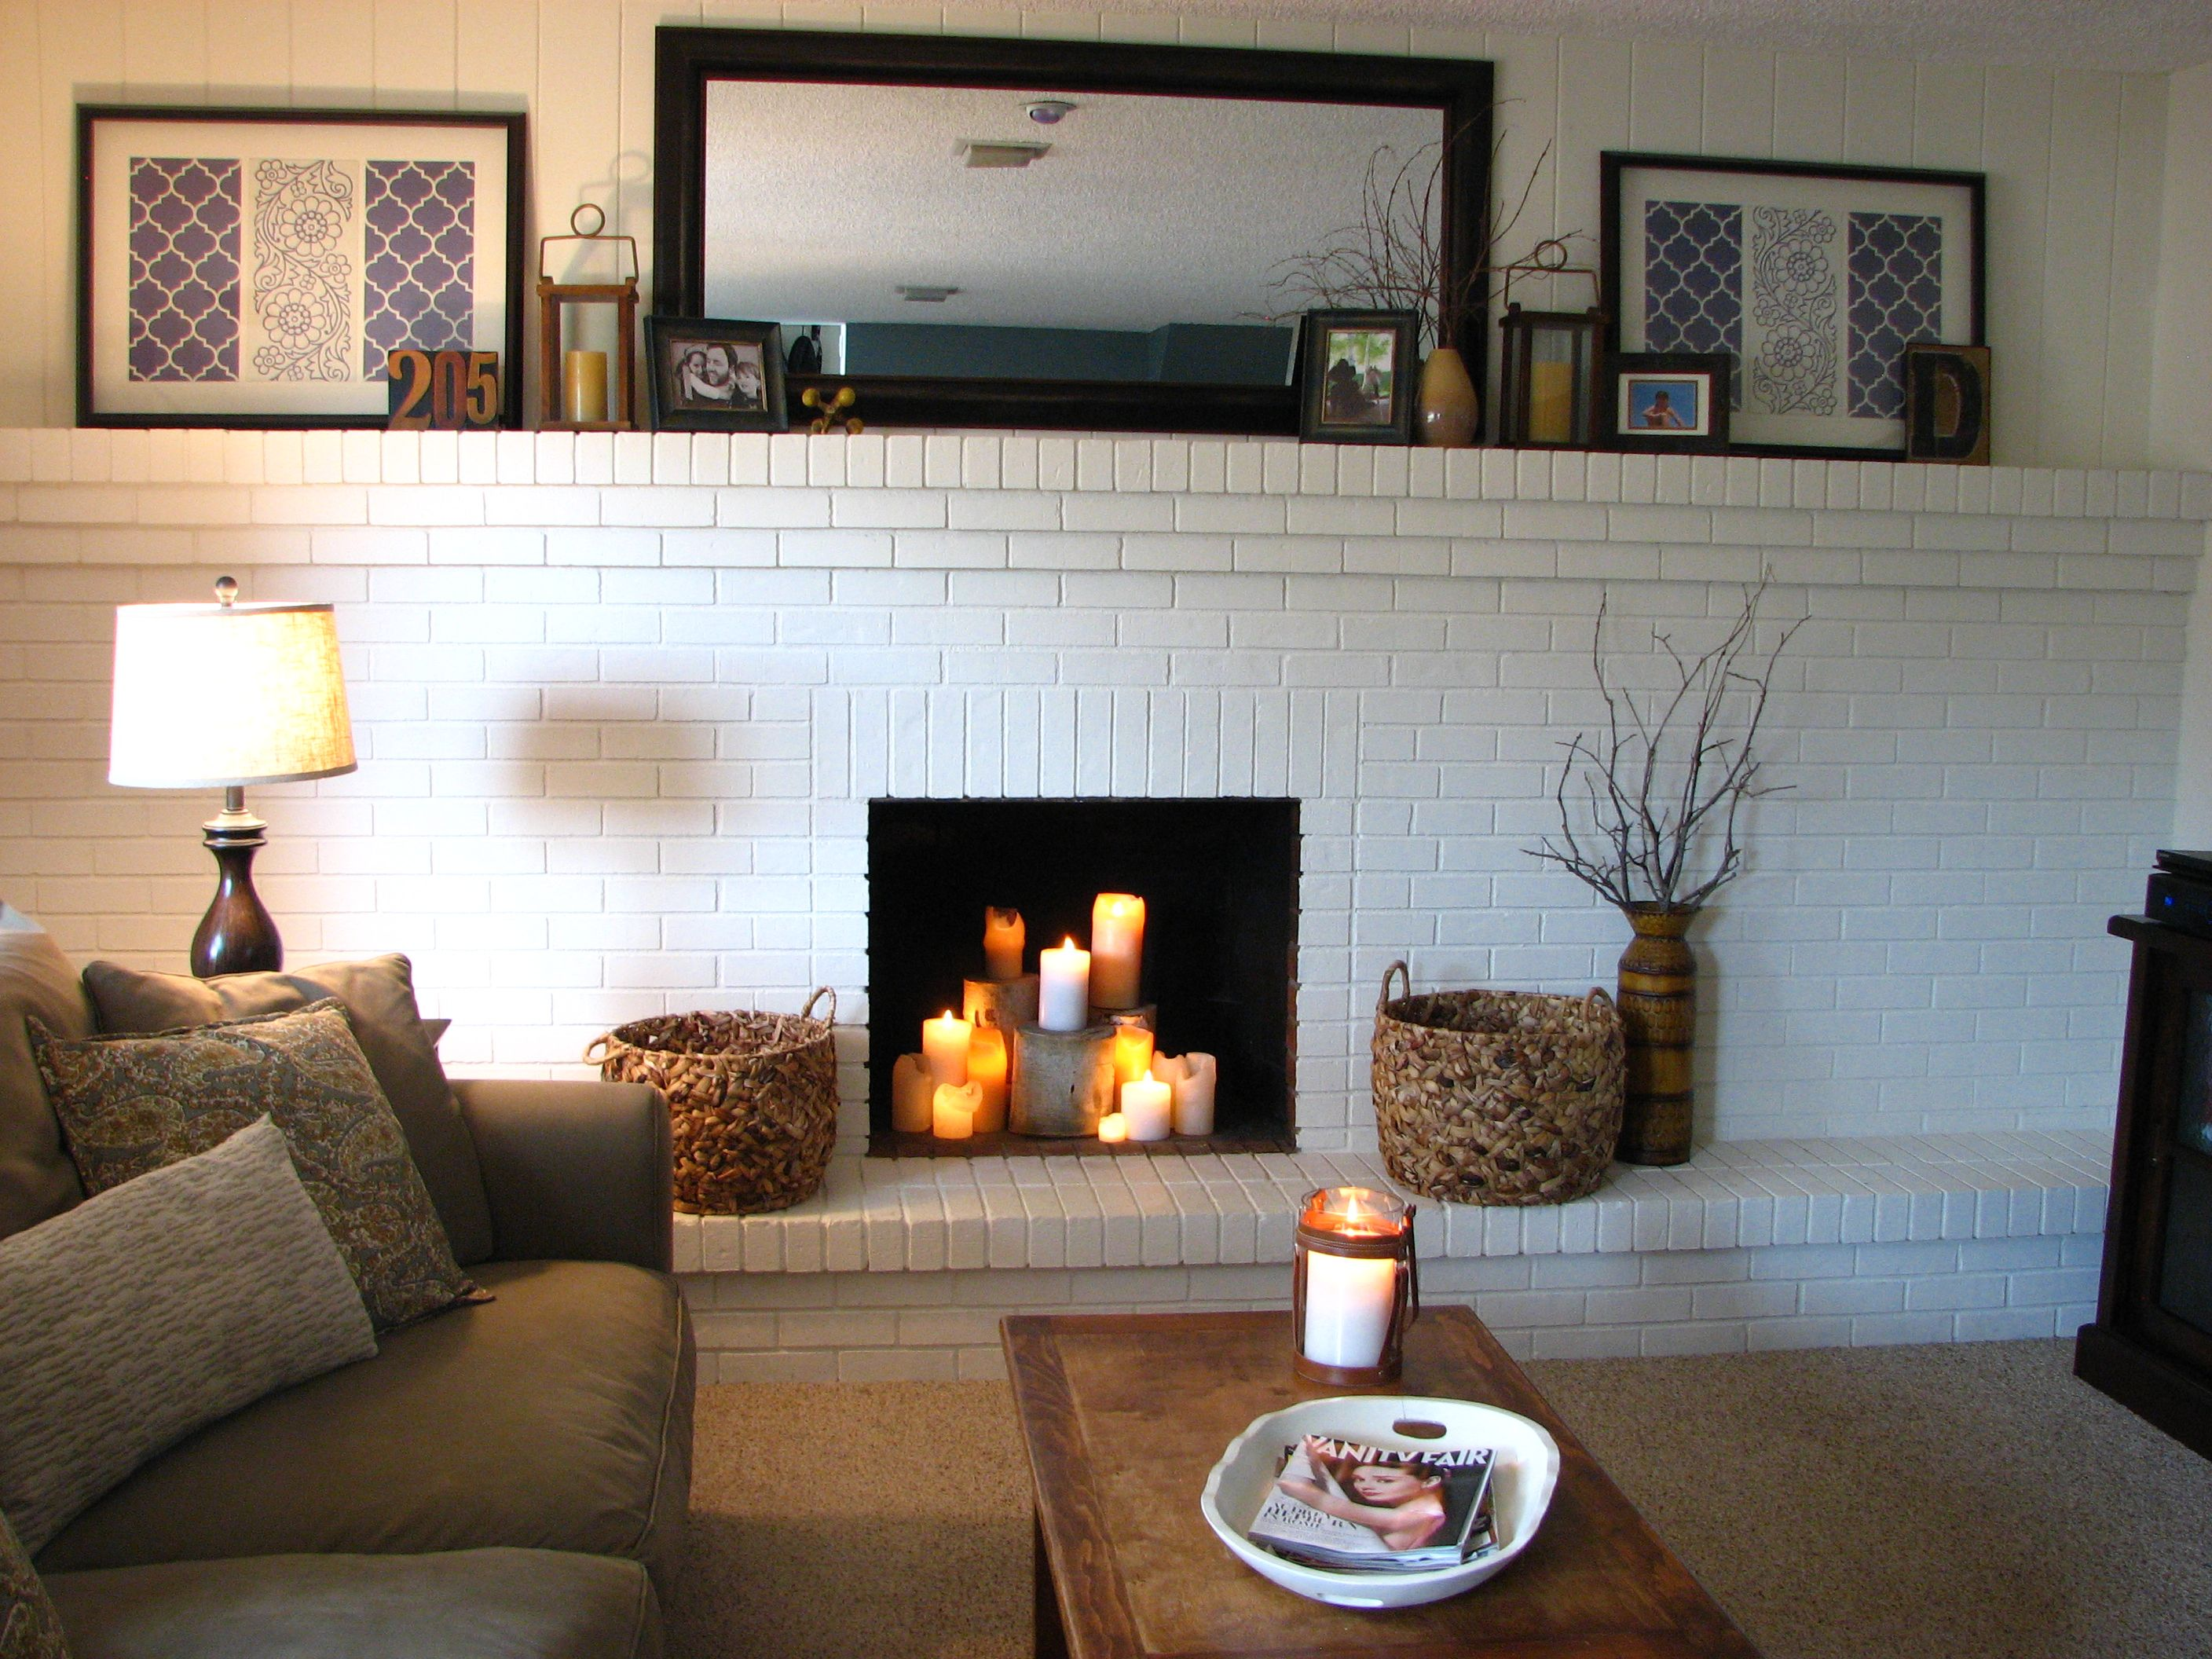 Wondrous All In The Family Roompainted Brick Fireplace Peggy Home Interior And Landscaping Ponolsignezvosmurscom